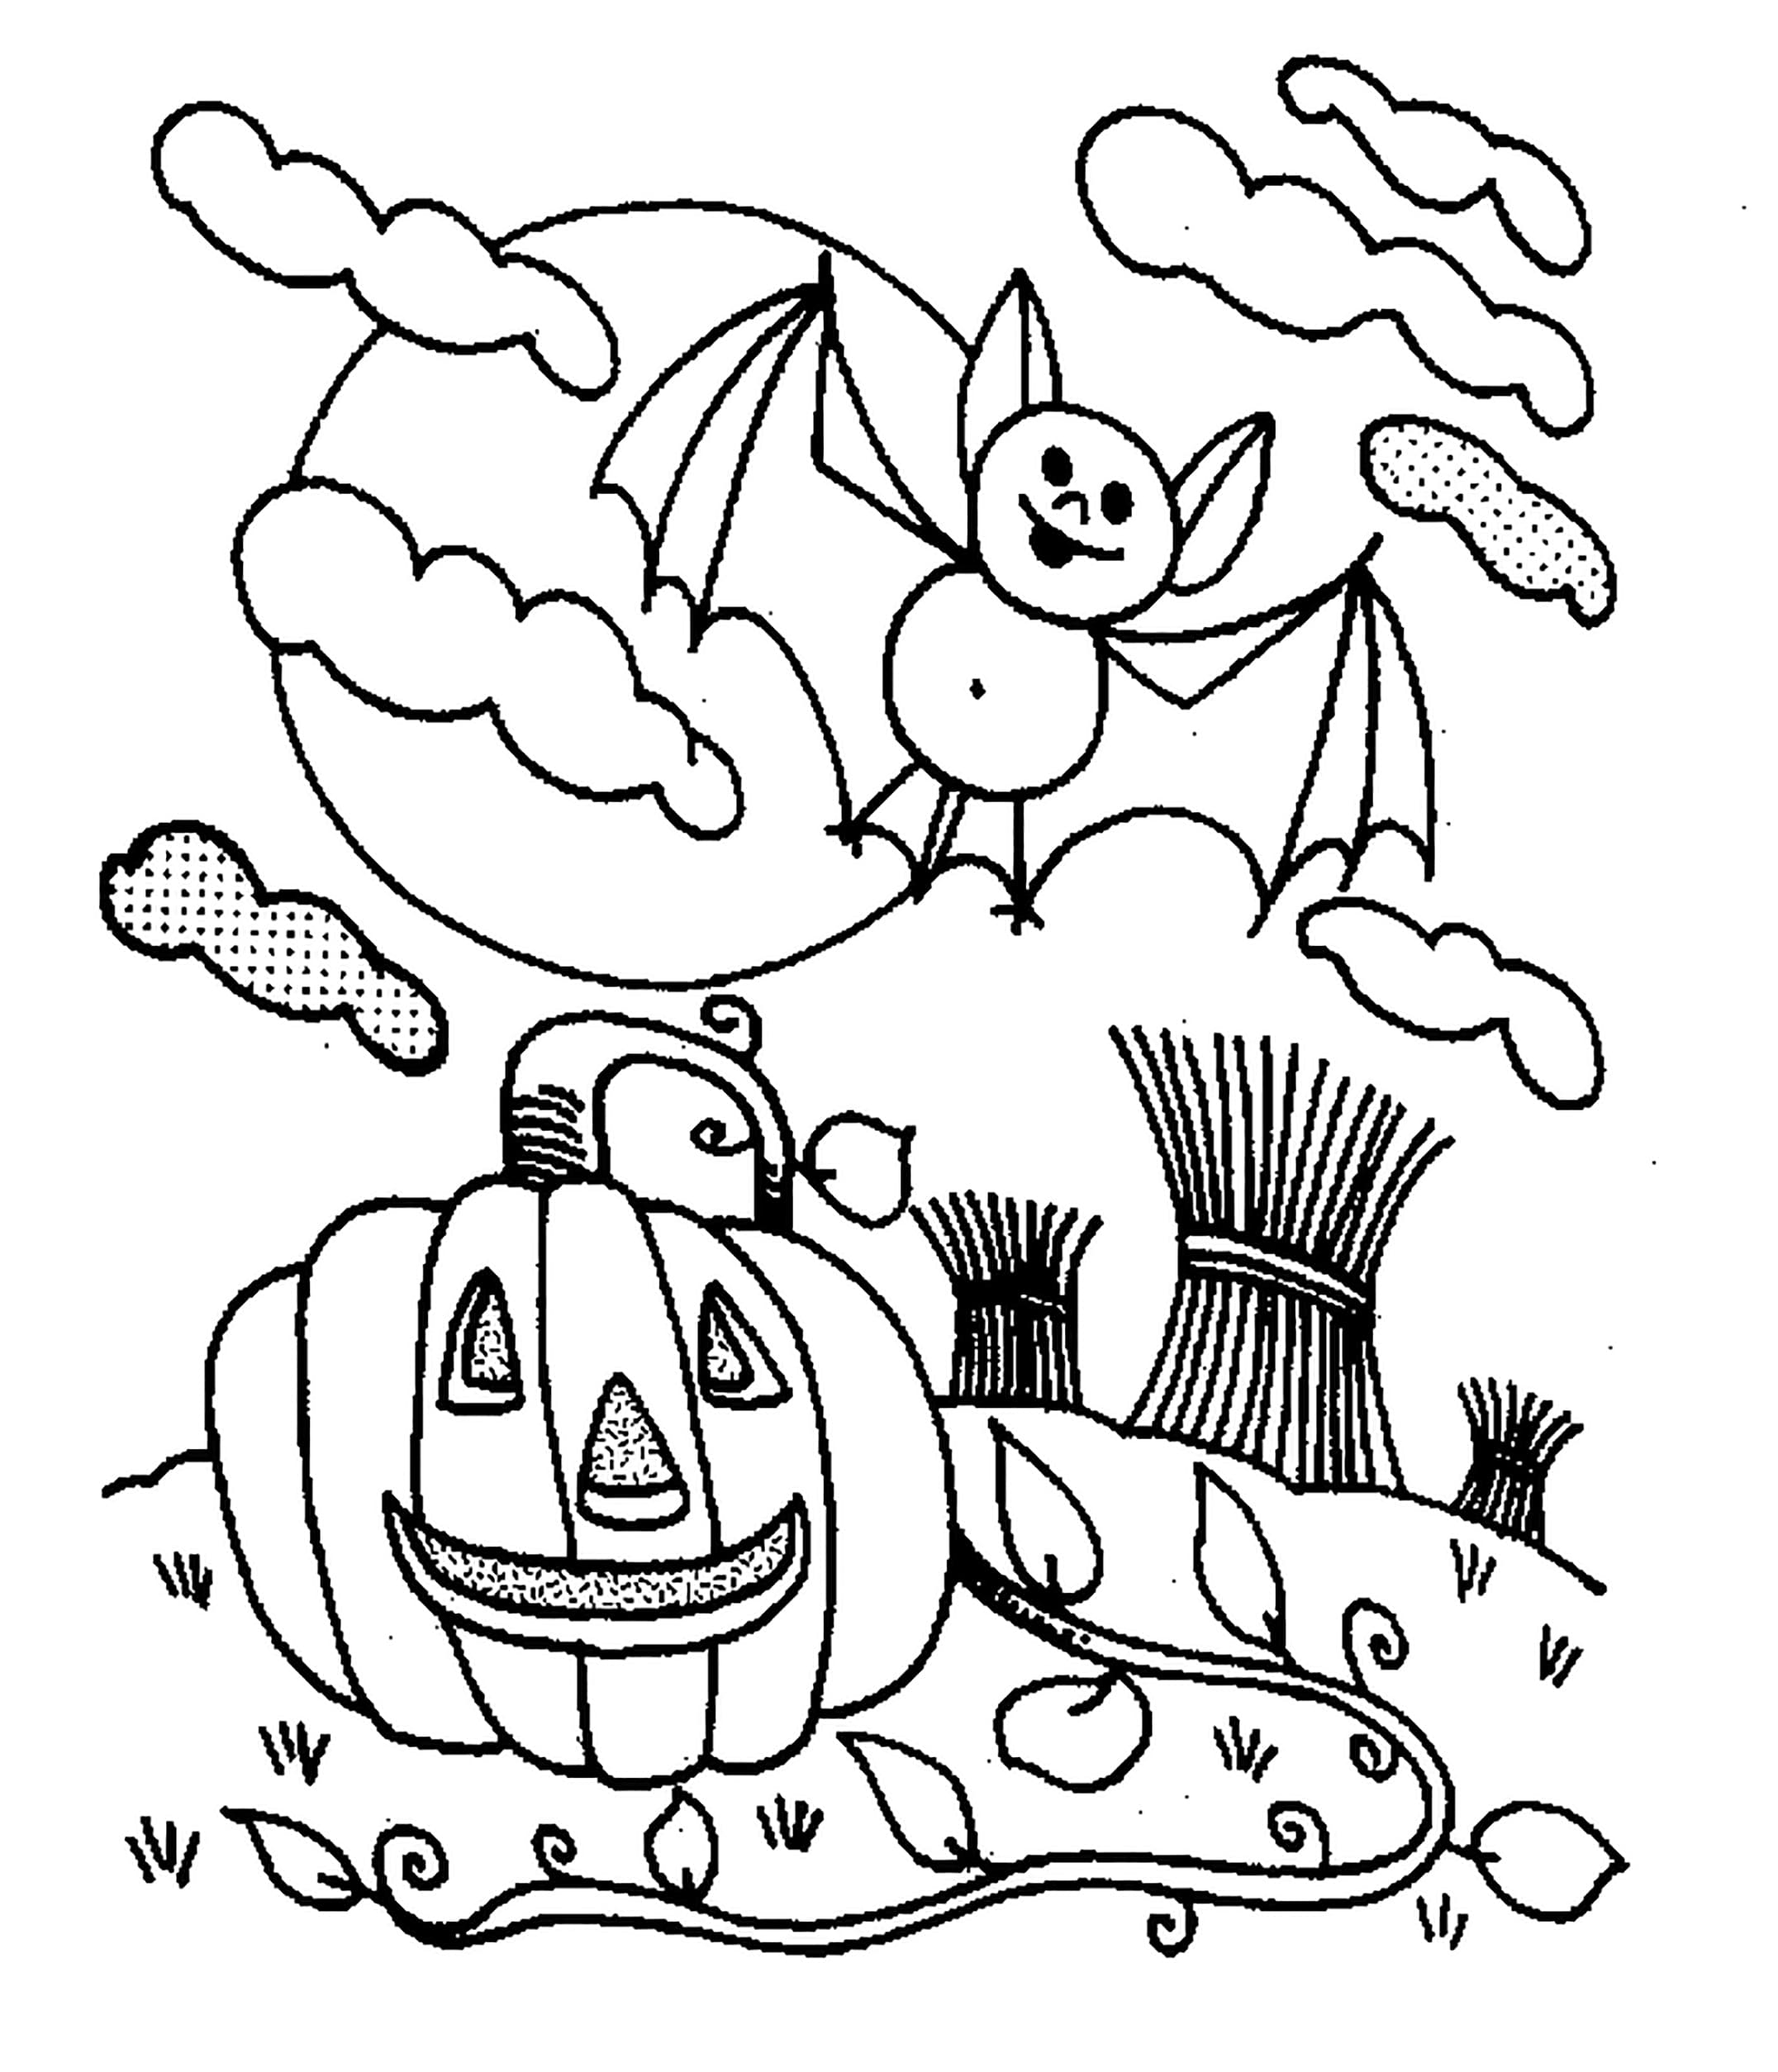 printable halloween coloring pages halloween coloring pages for kids 100 pictures print coloring halloween printable pages